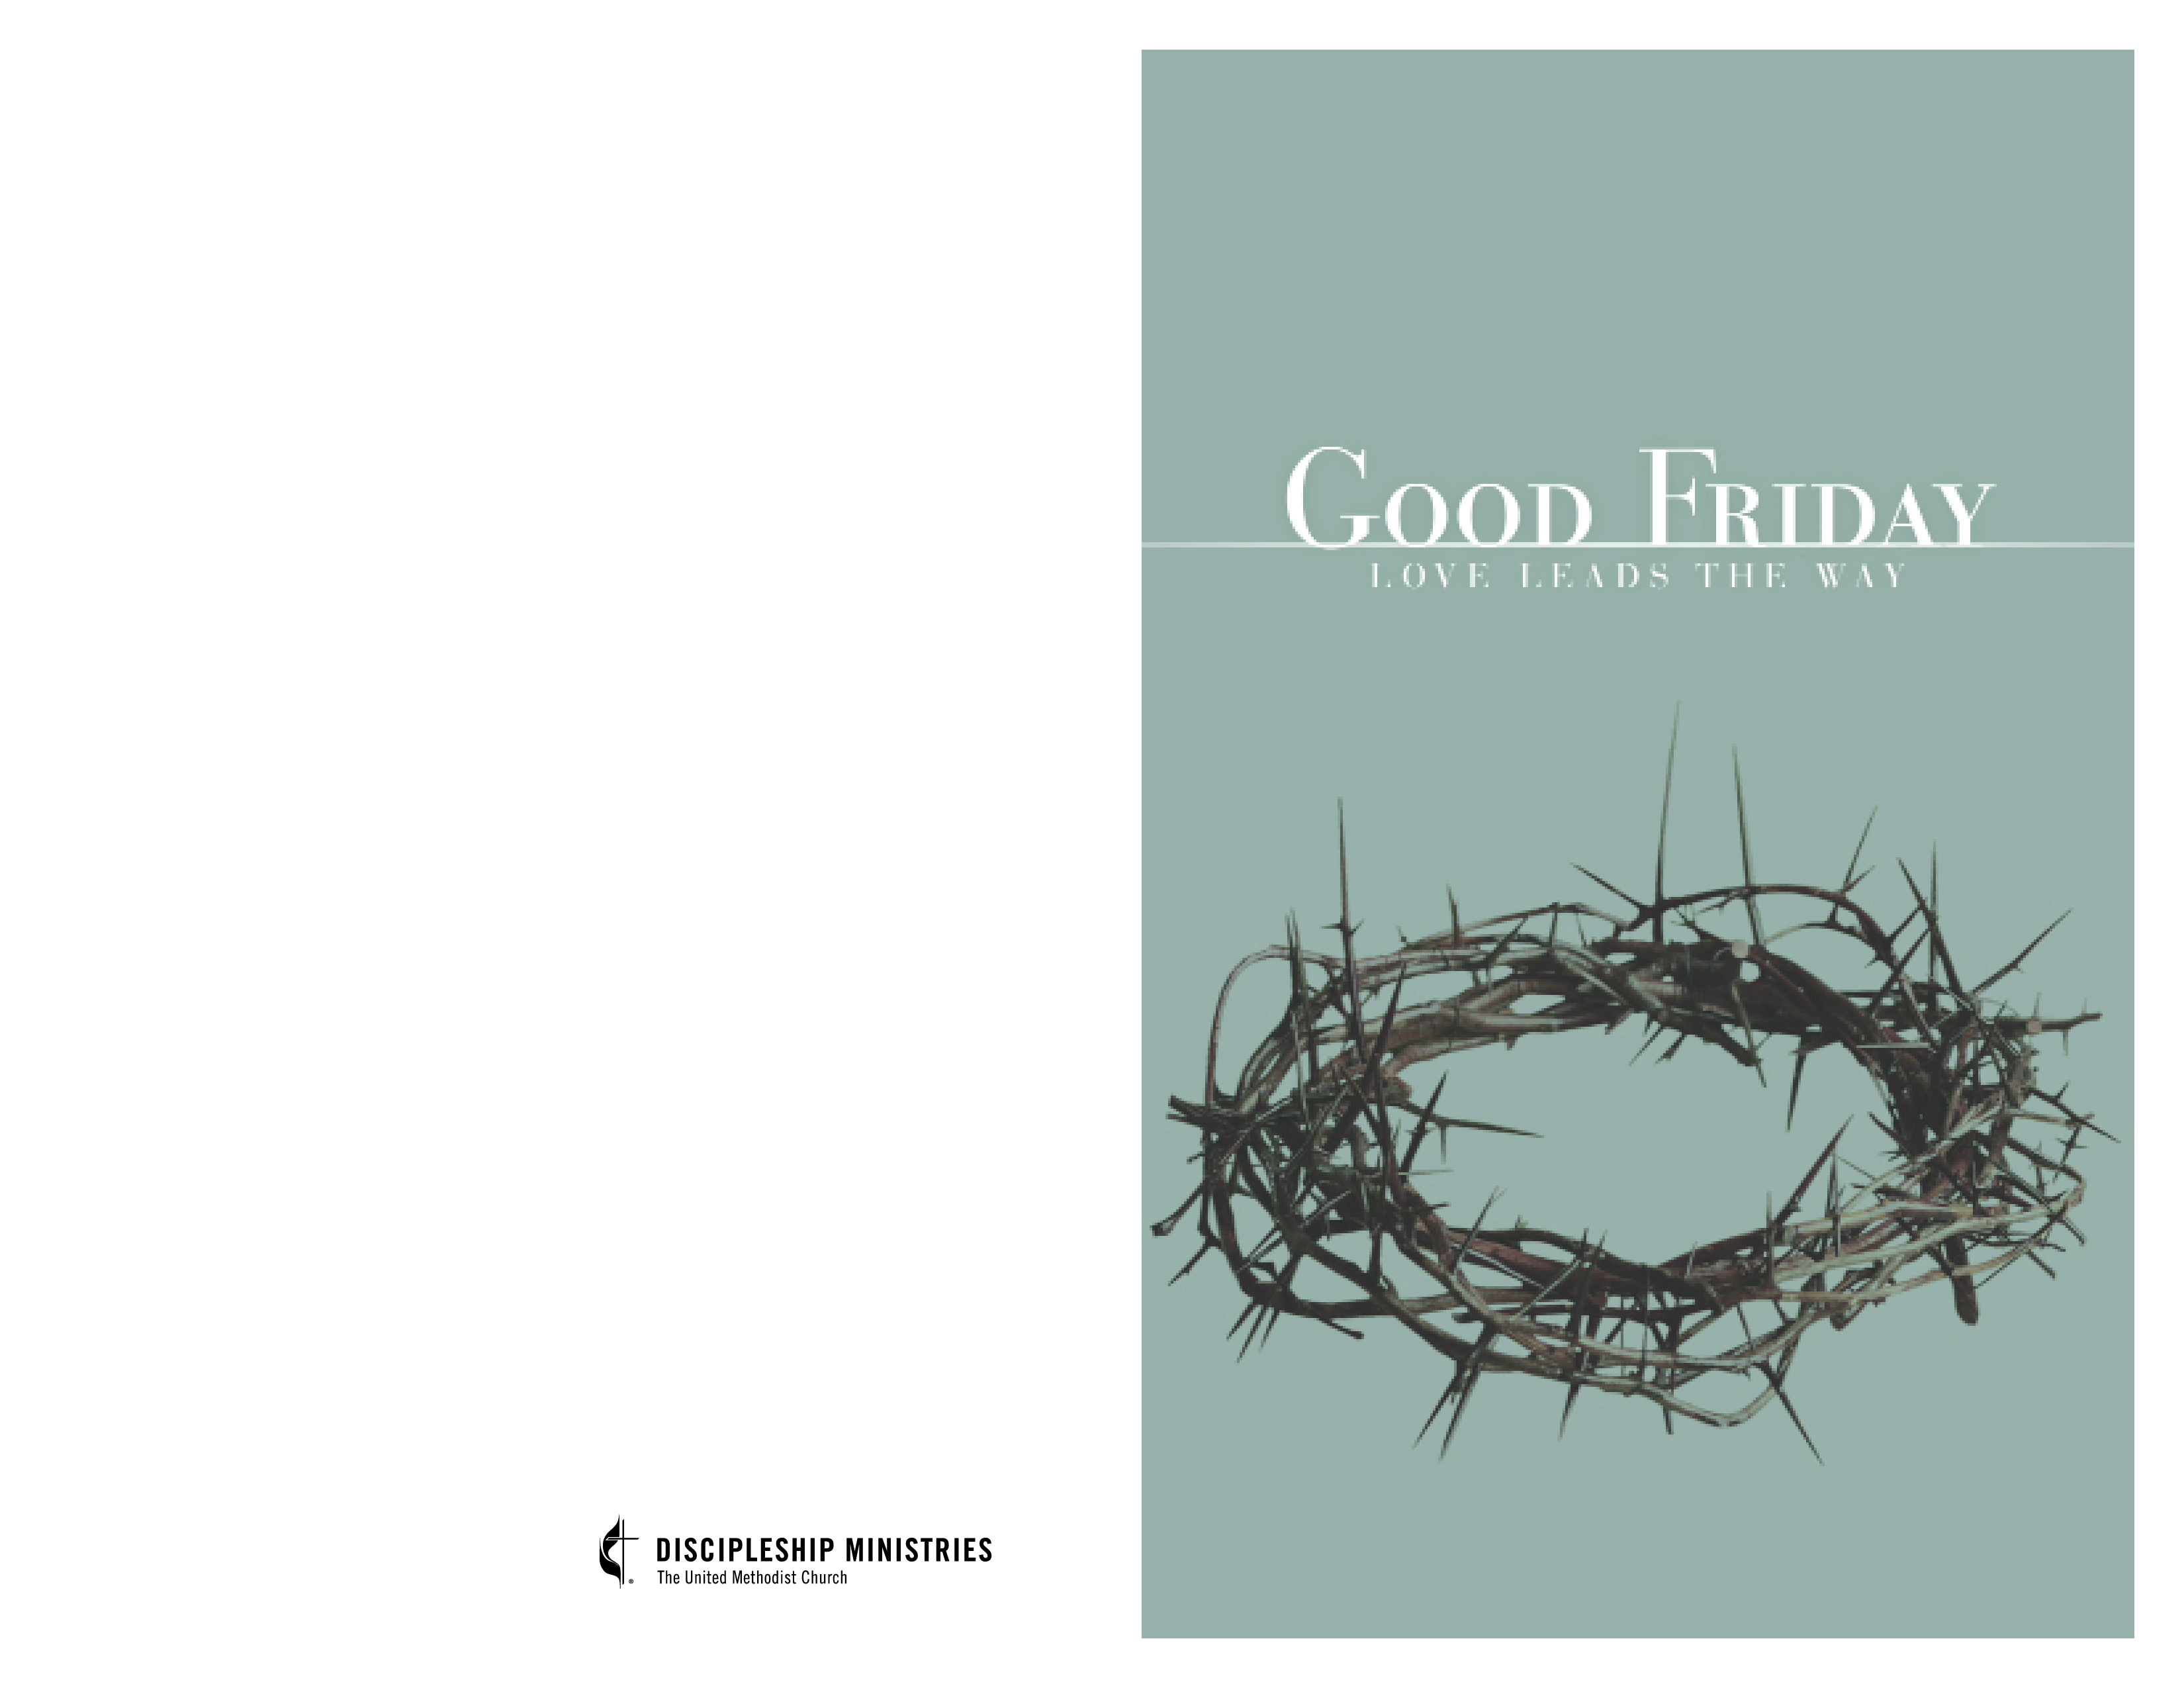 holy good friday 2018 graphics resources discipleship